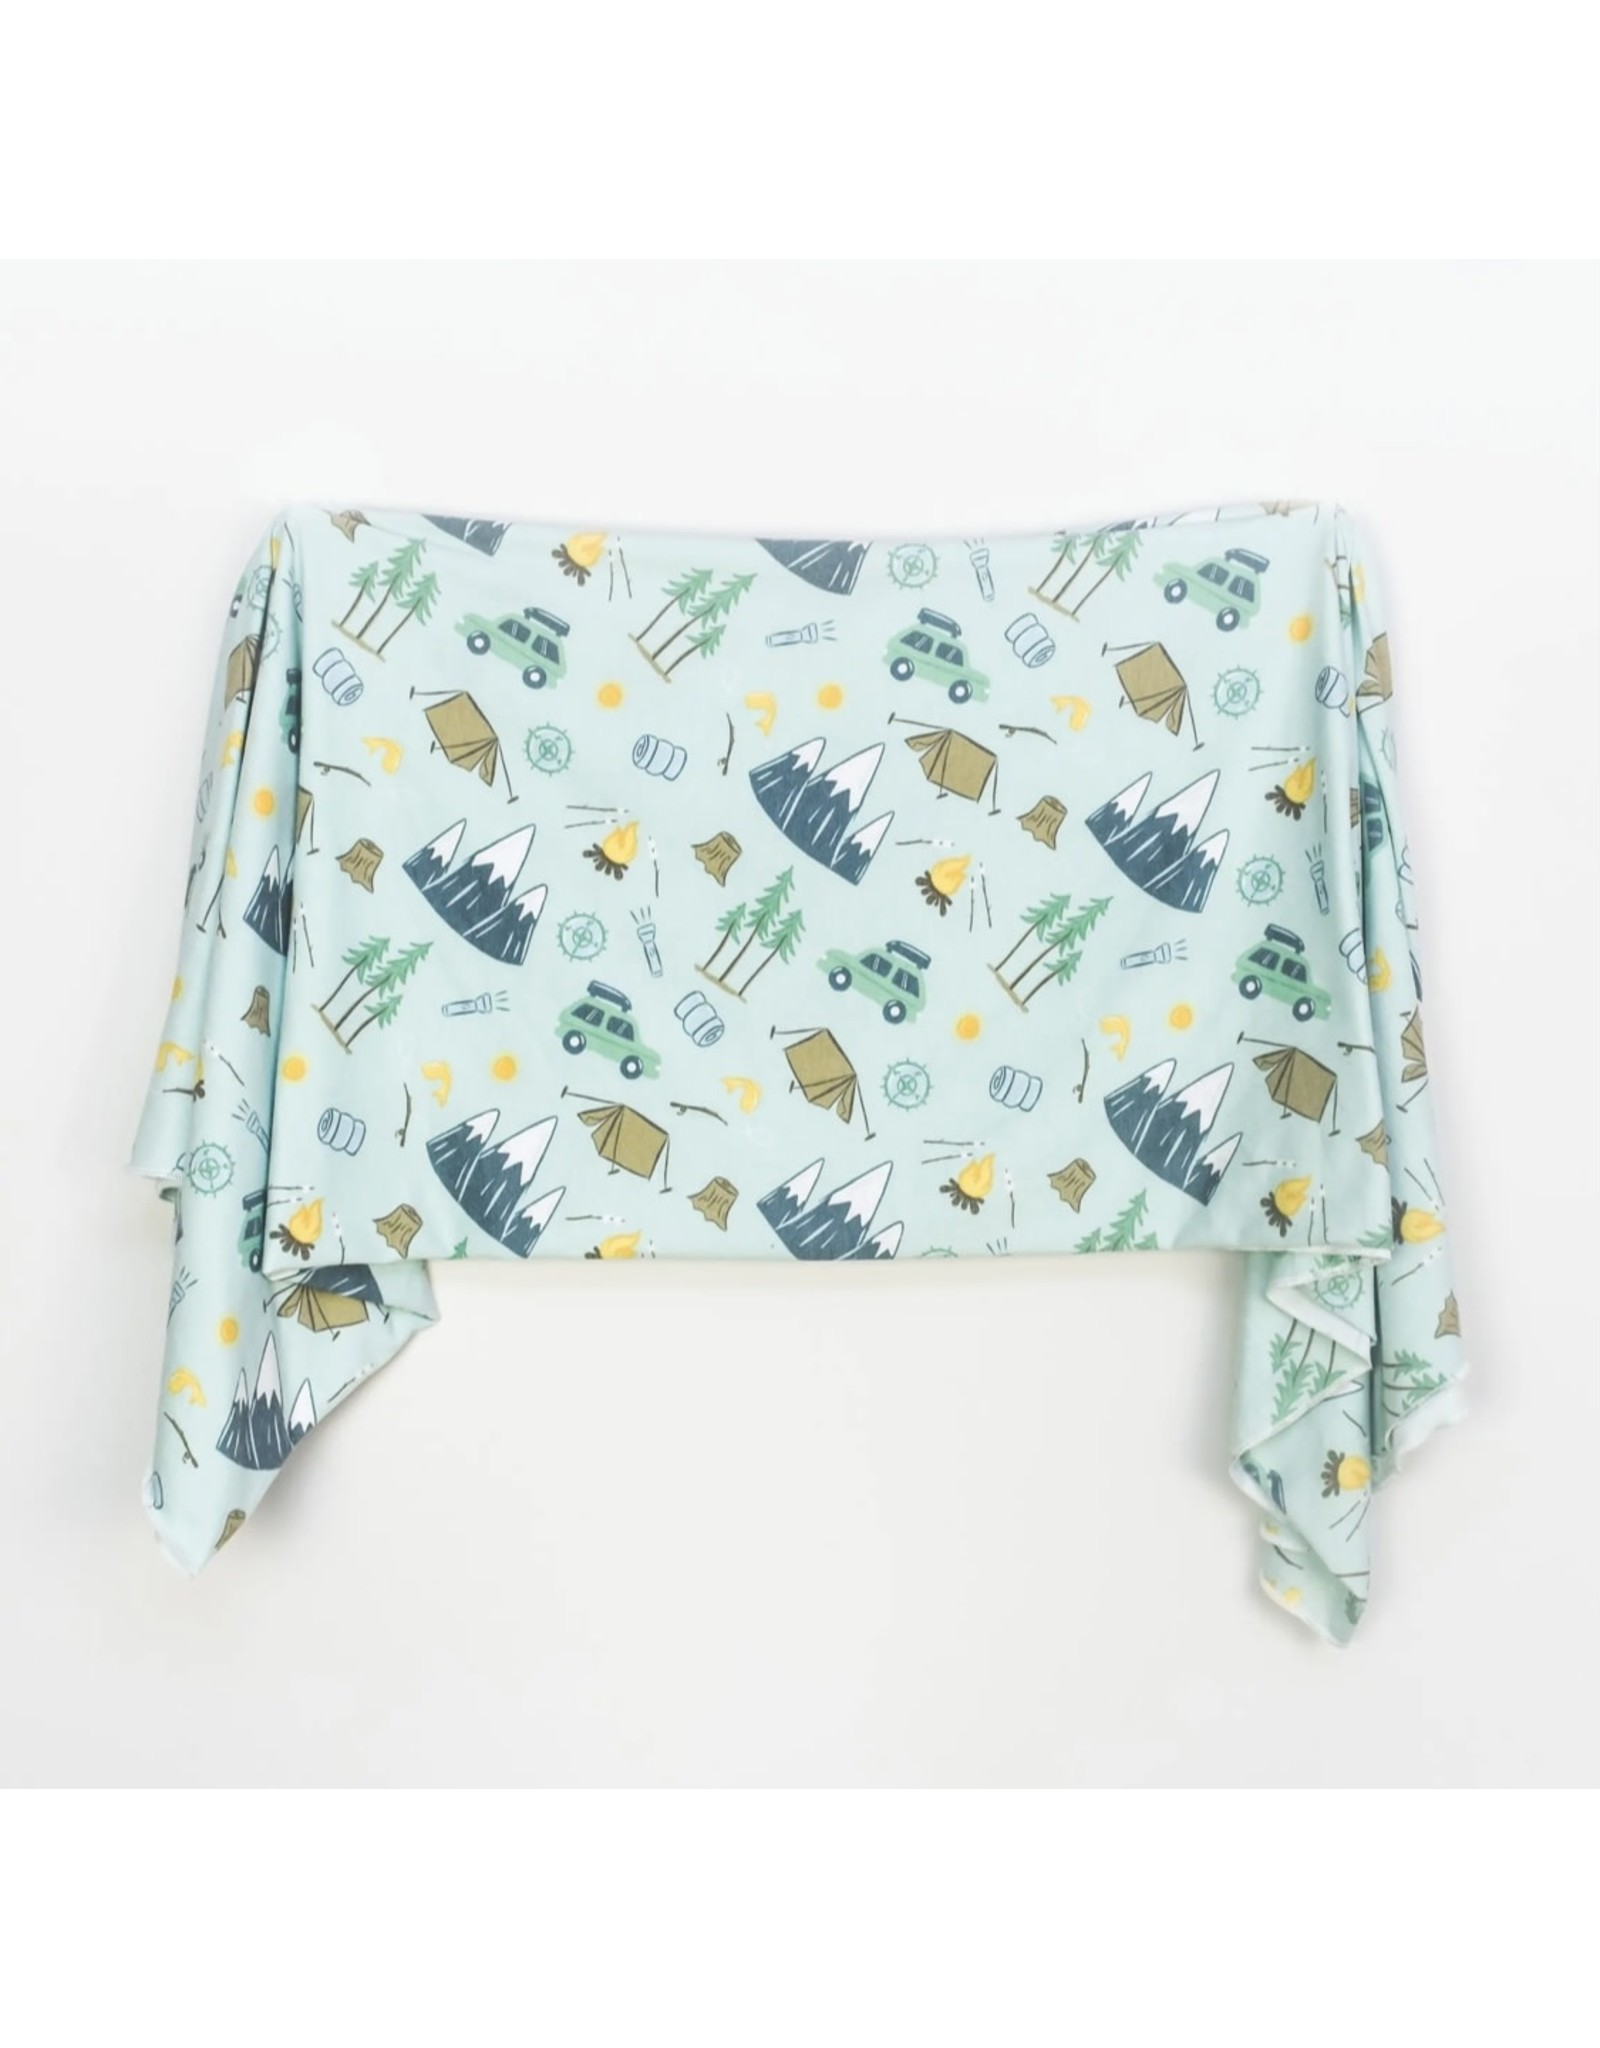 Village Baby Village Baby- Extra Soft Stretchy Knit Swaddle Blanket: Outdoor Adventure